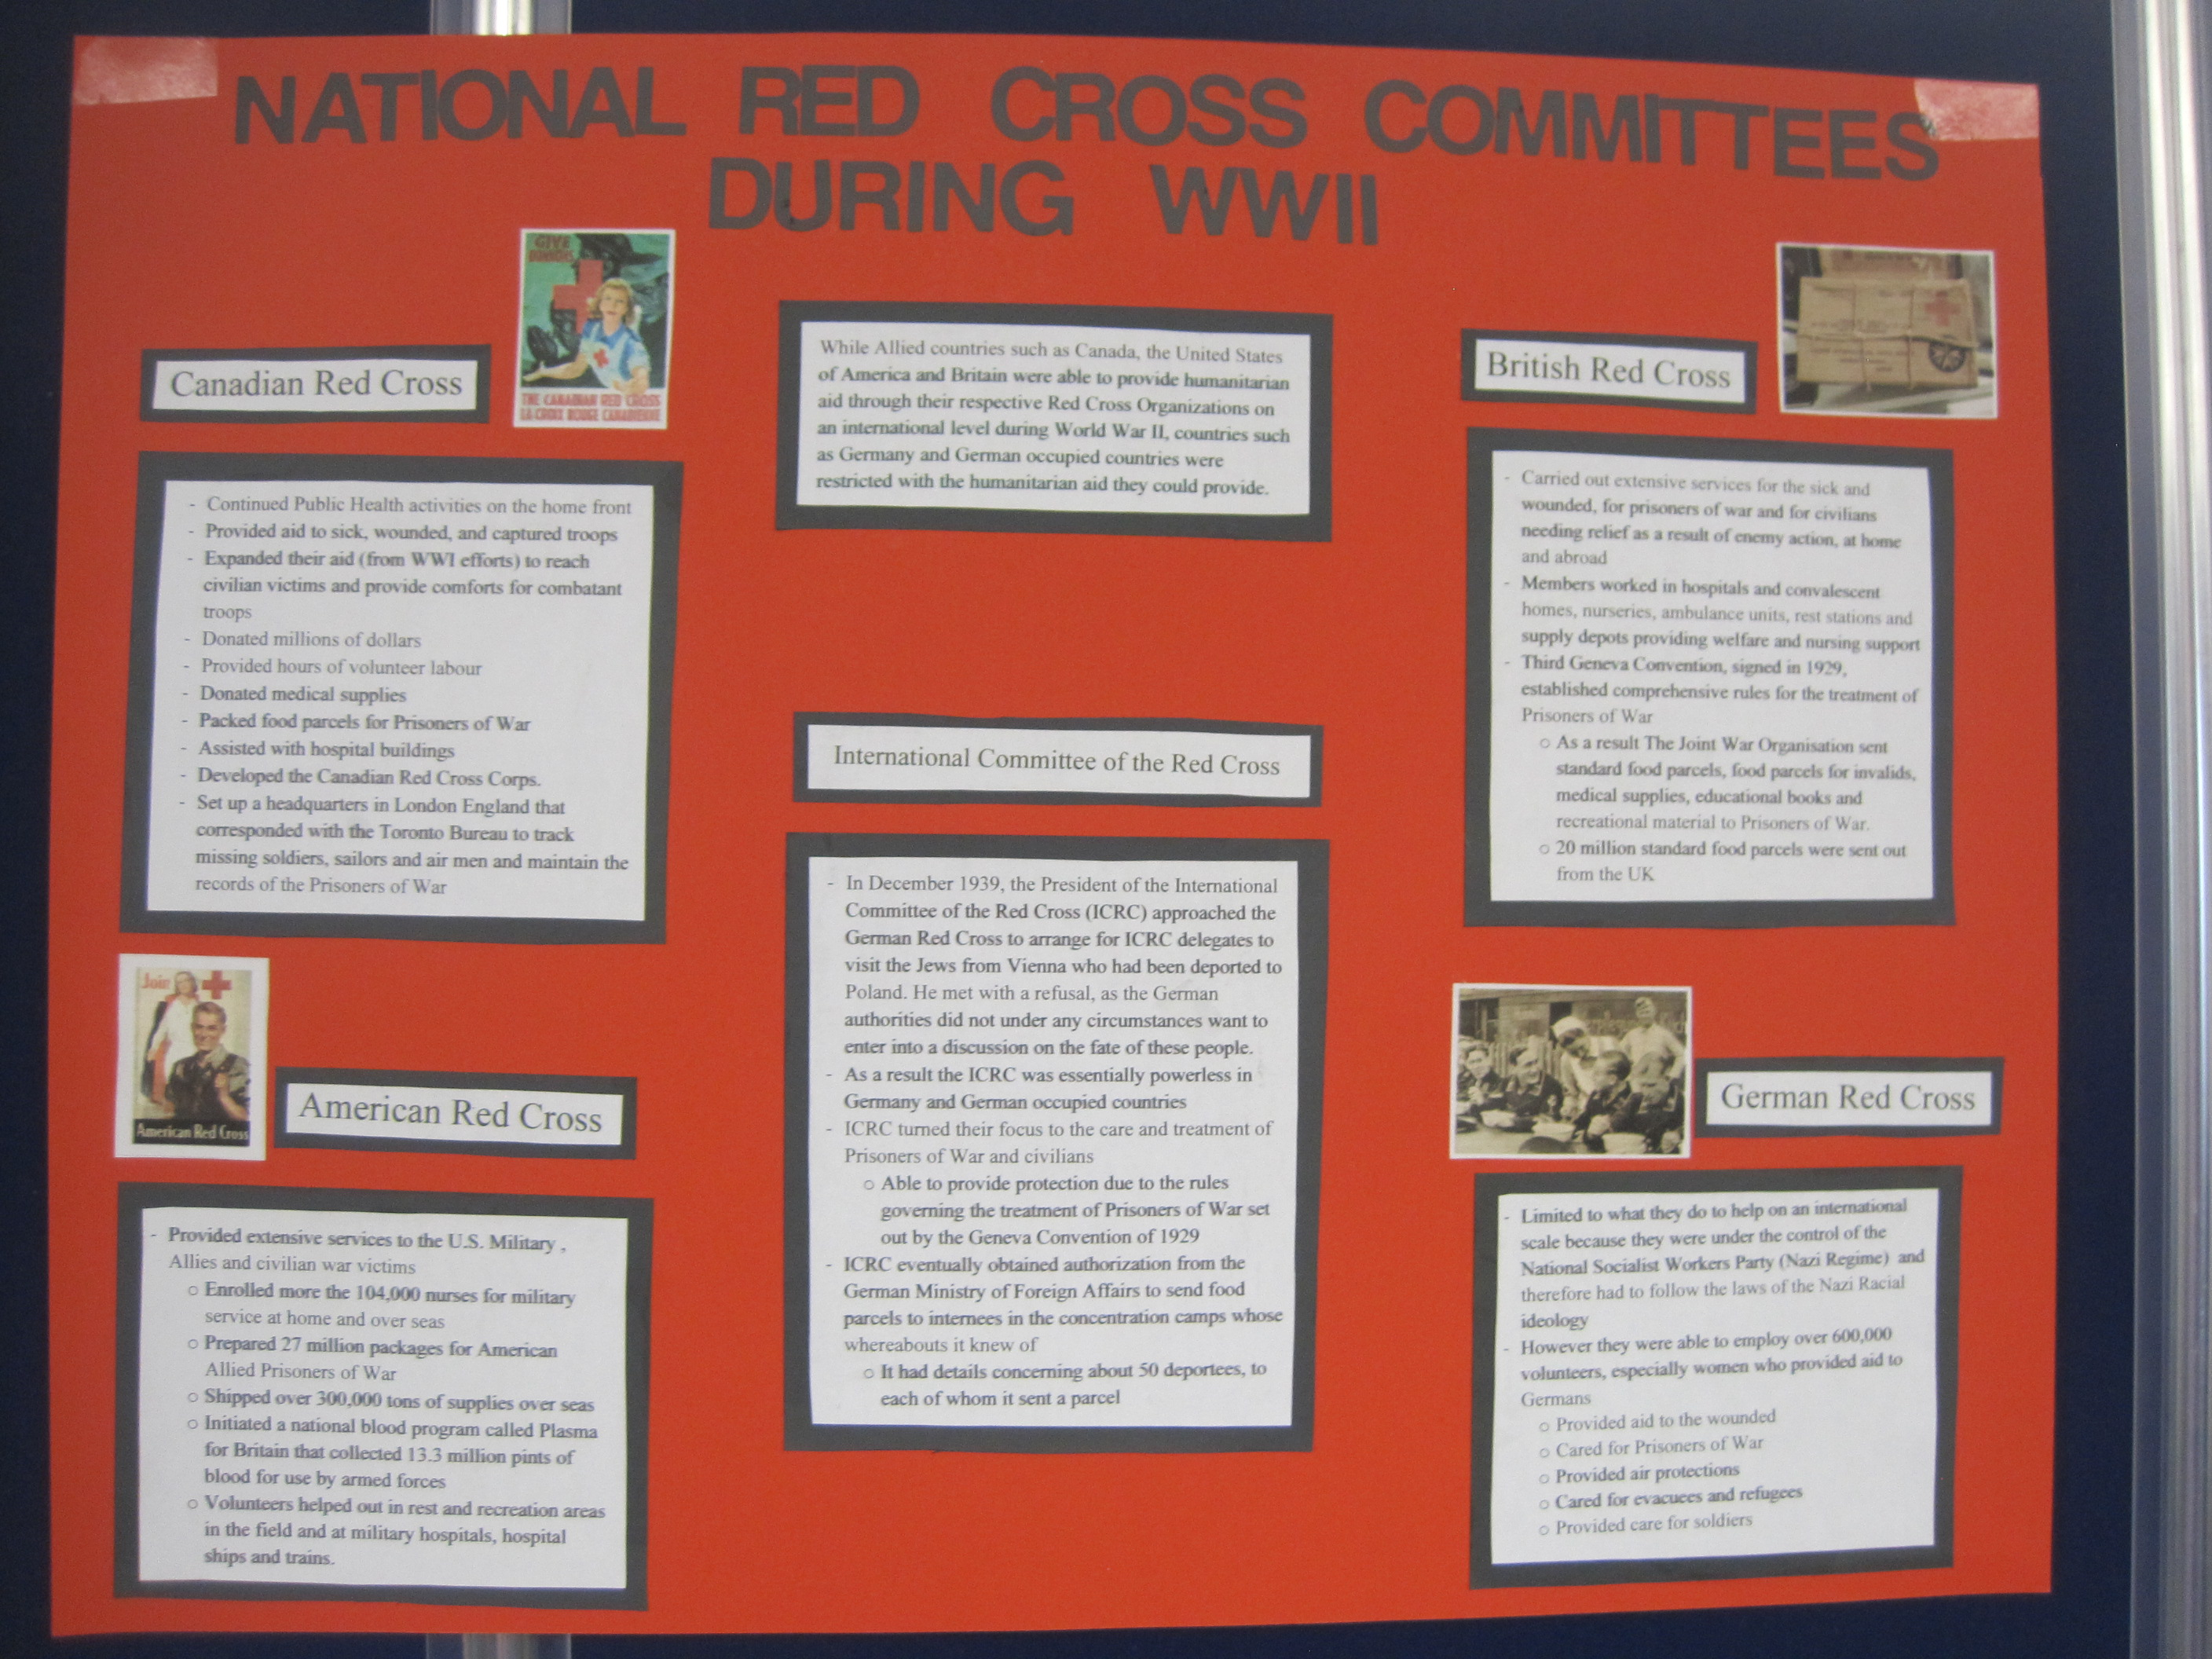 National Red Cross Societies during World War Two